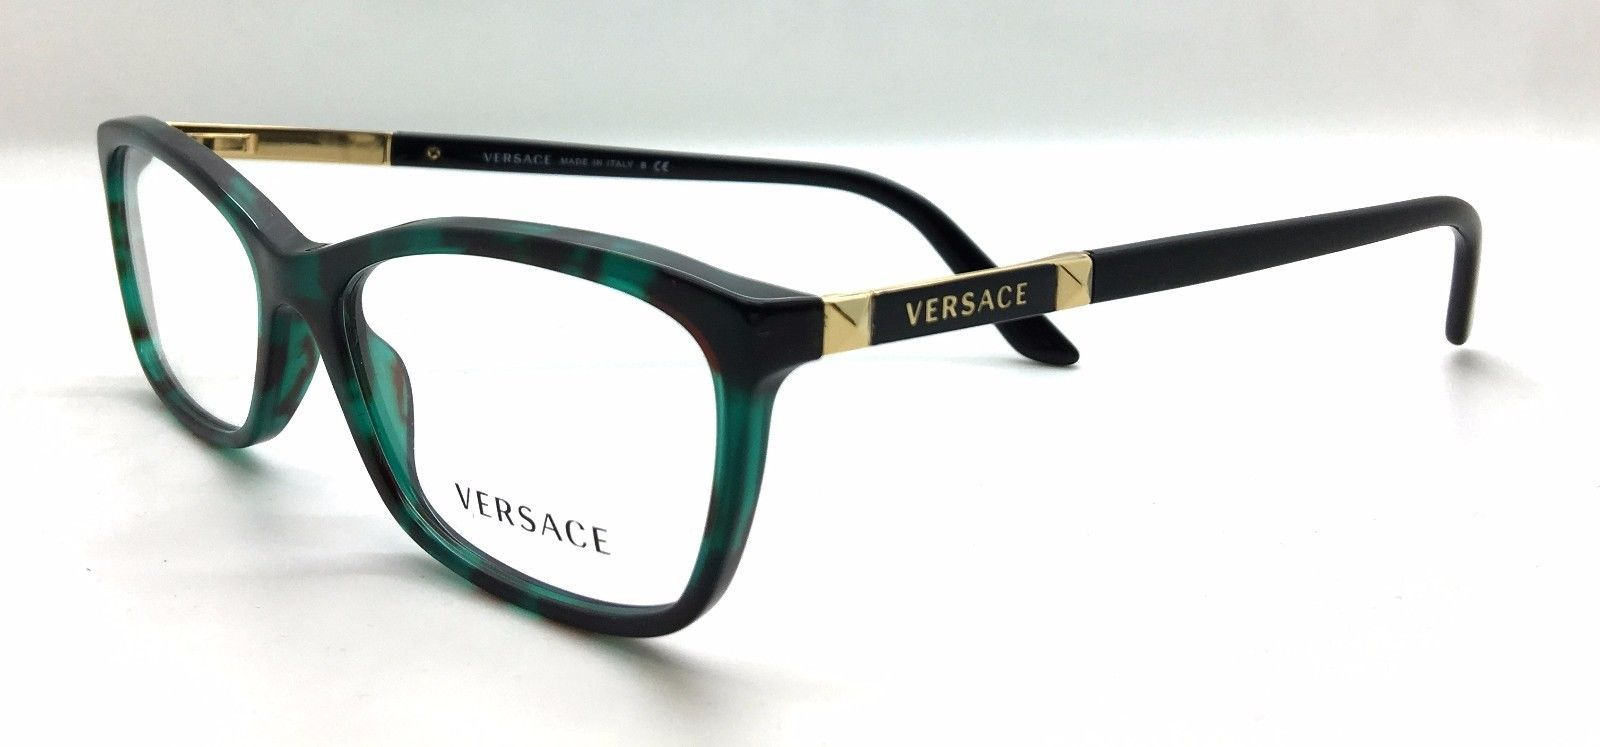 1fe7ac55840d Versace MOD. 3186 5076 Green Tortoise New Authentic Eyeglasses 52mm 16mm  140mm